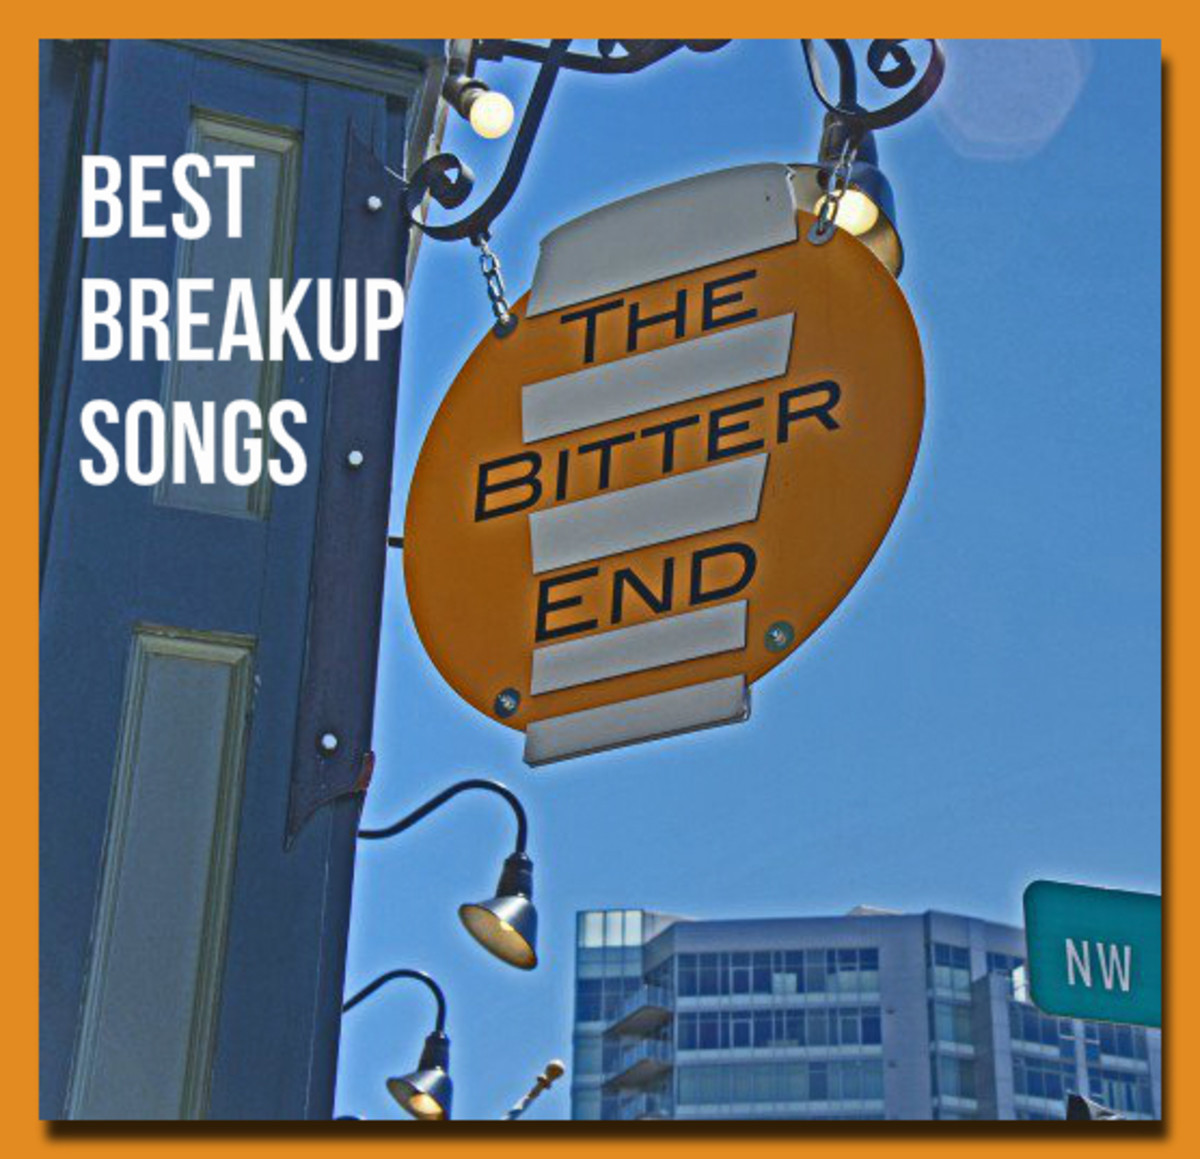 132 Songs About Breakups, Heartbreak, and Divorce